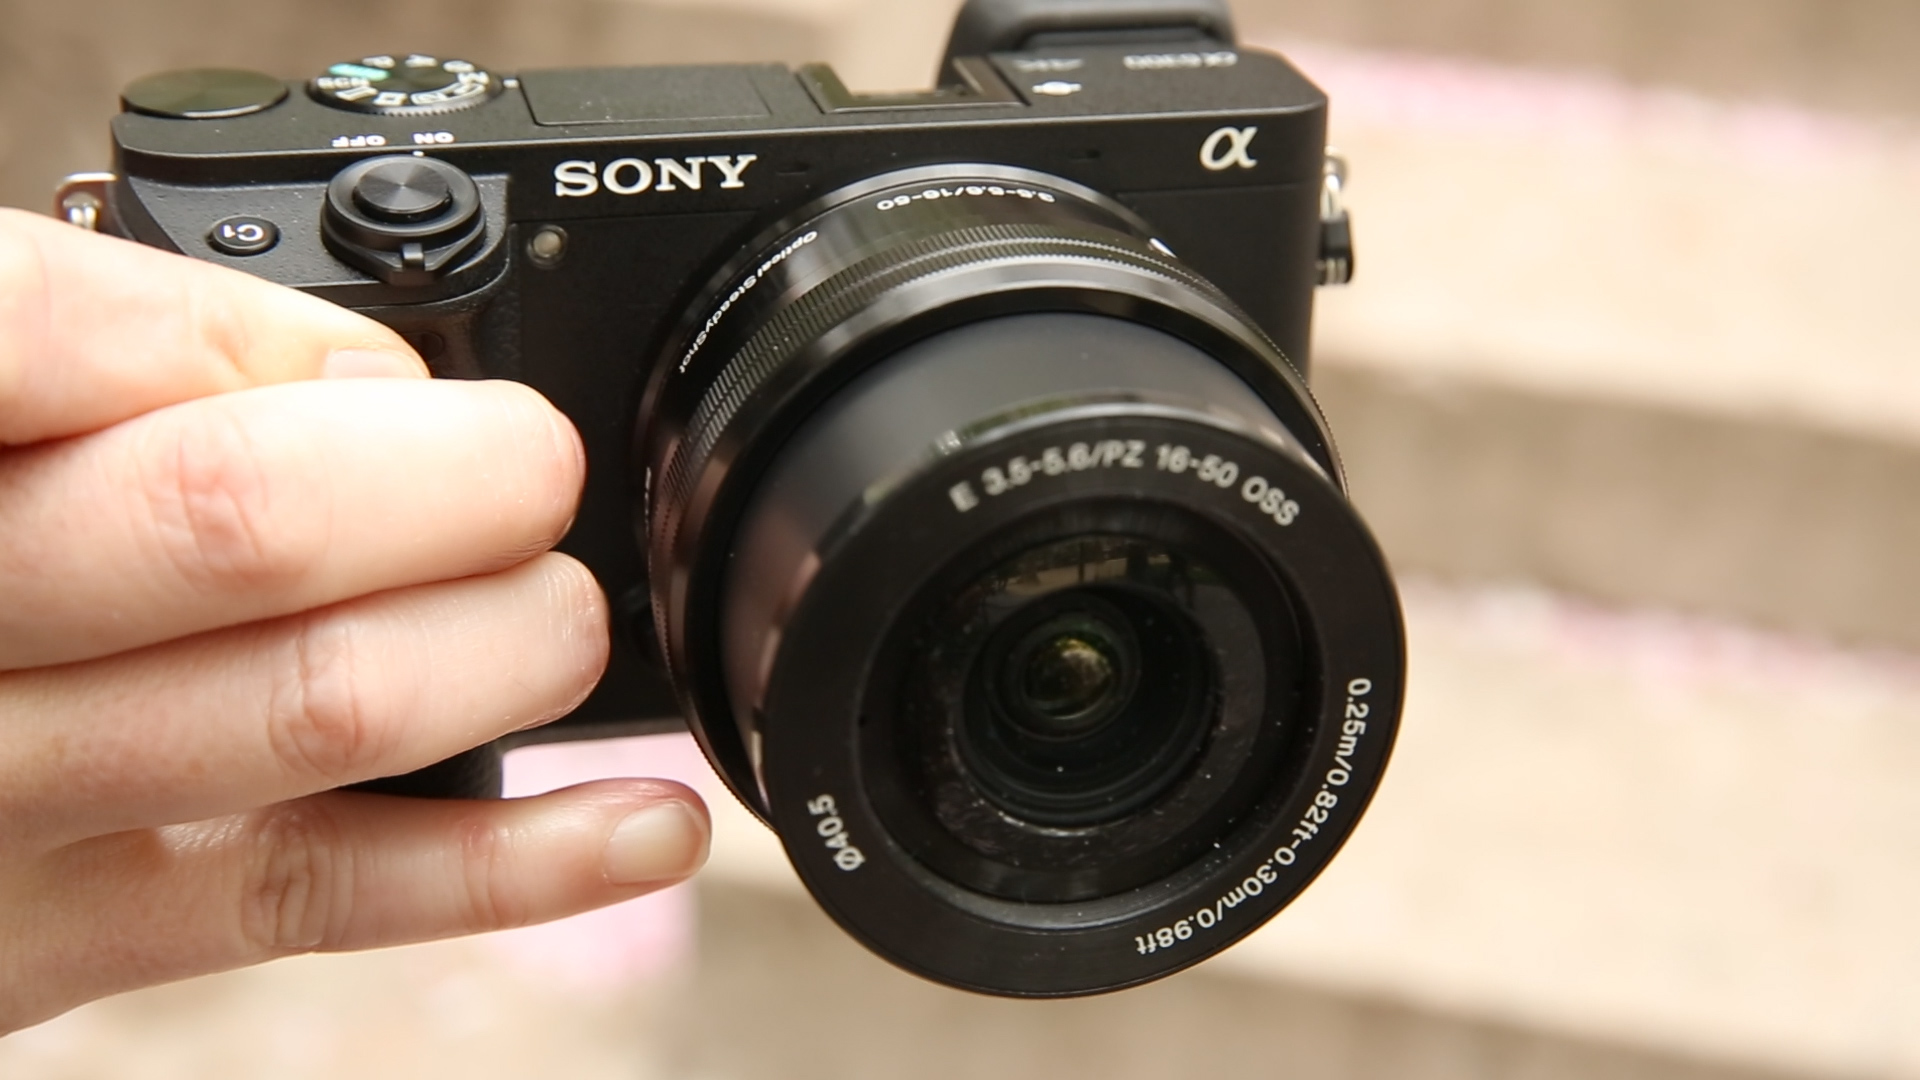 Video: A great mirrorless camera gets better